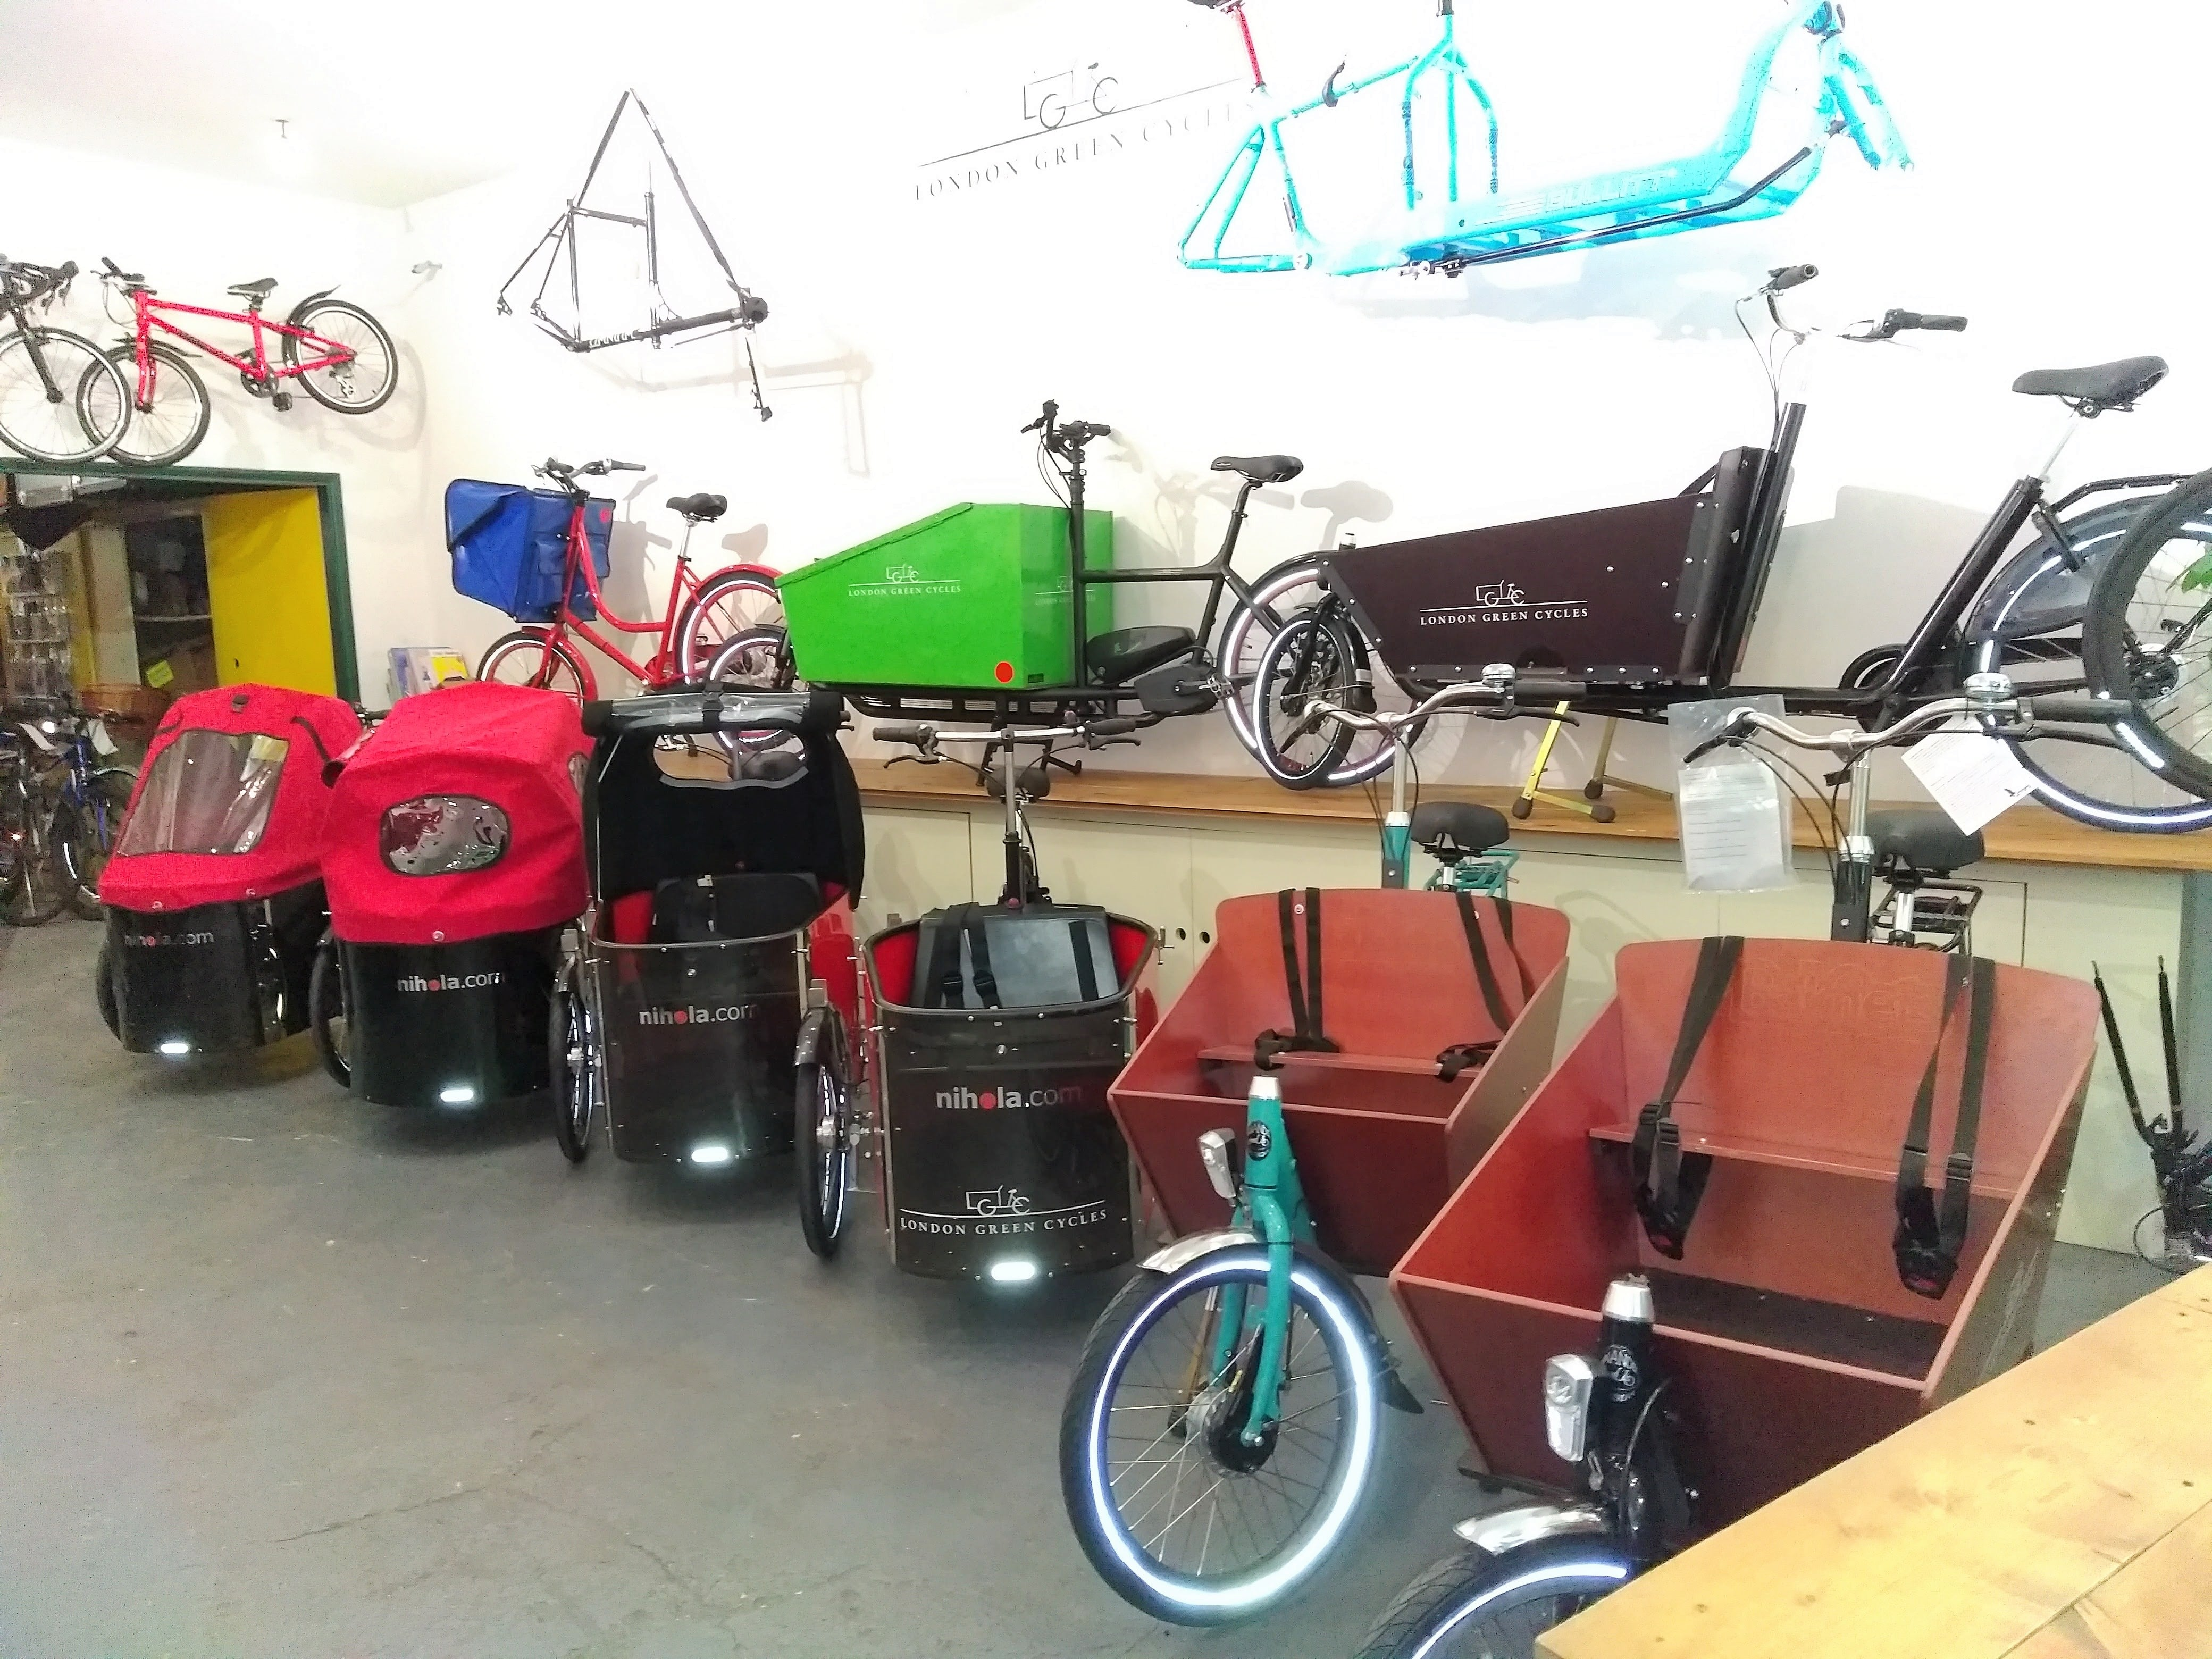 Showroom | London Green Cycles